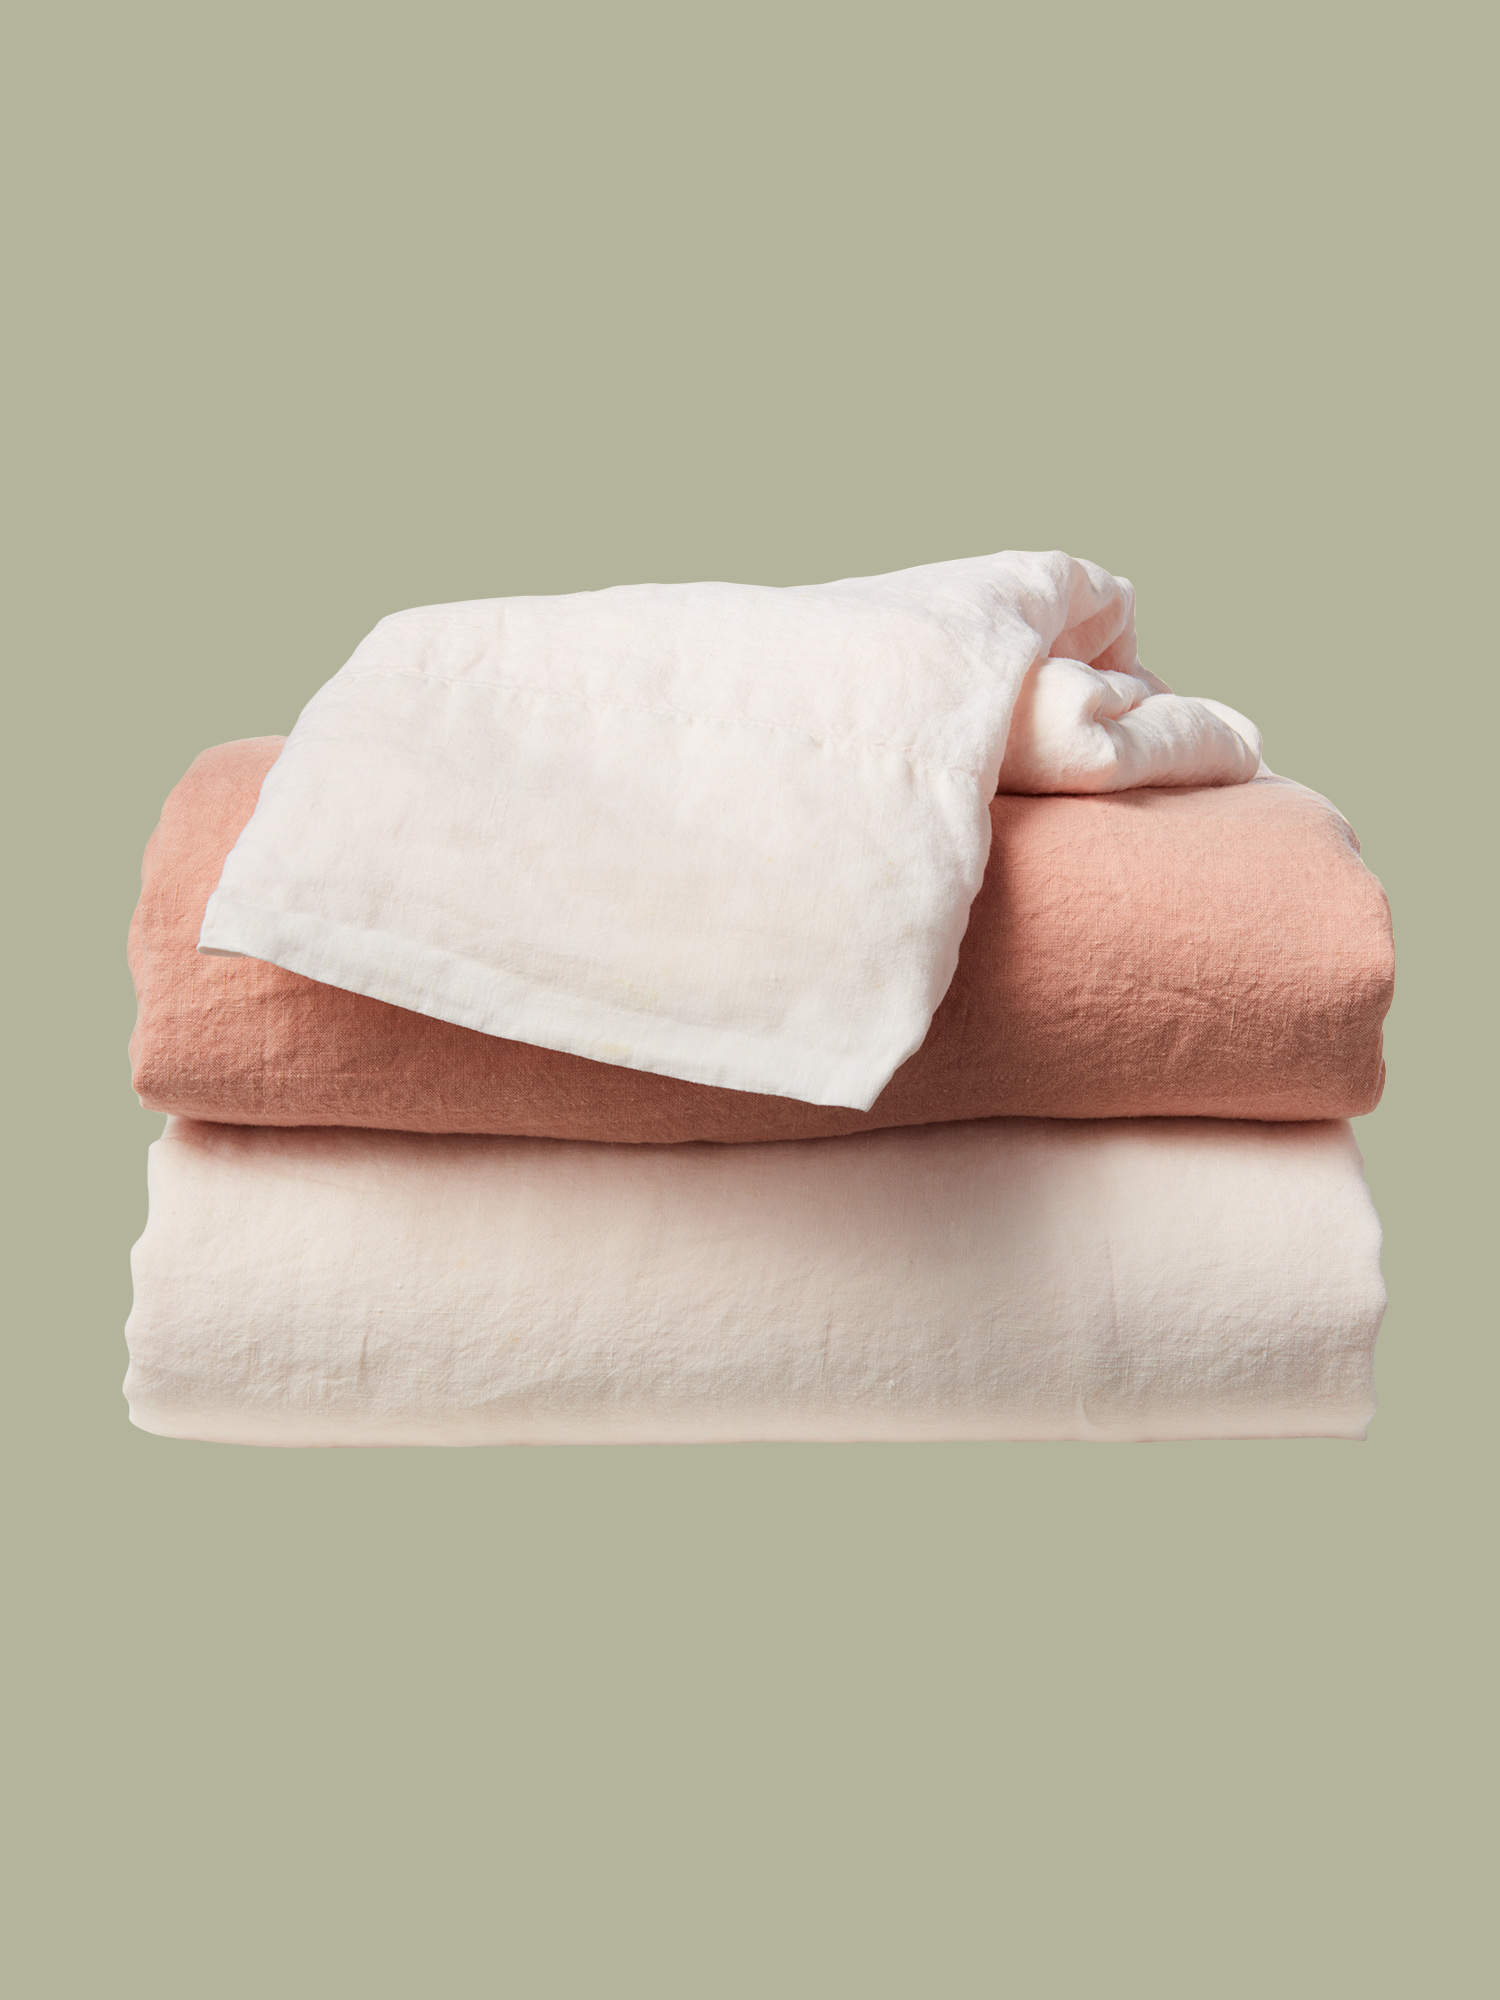 Hawkins New York linen sheets in Blush and Petal